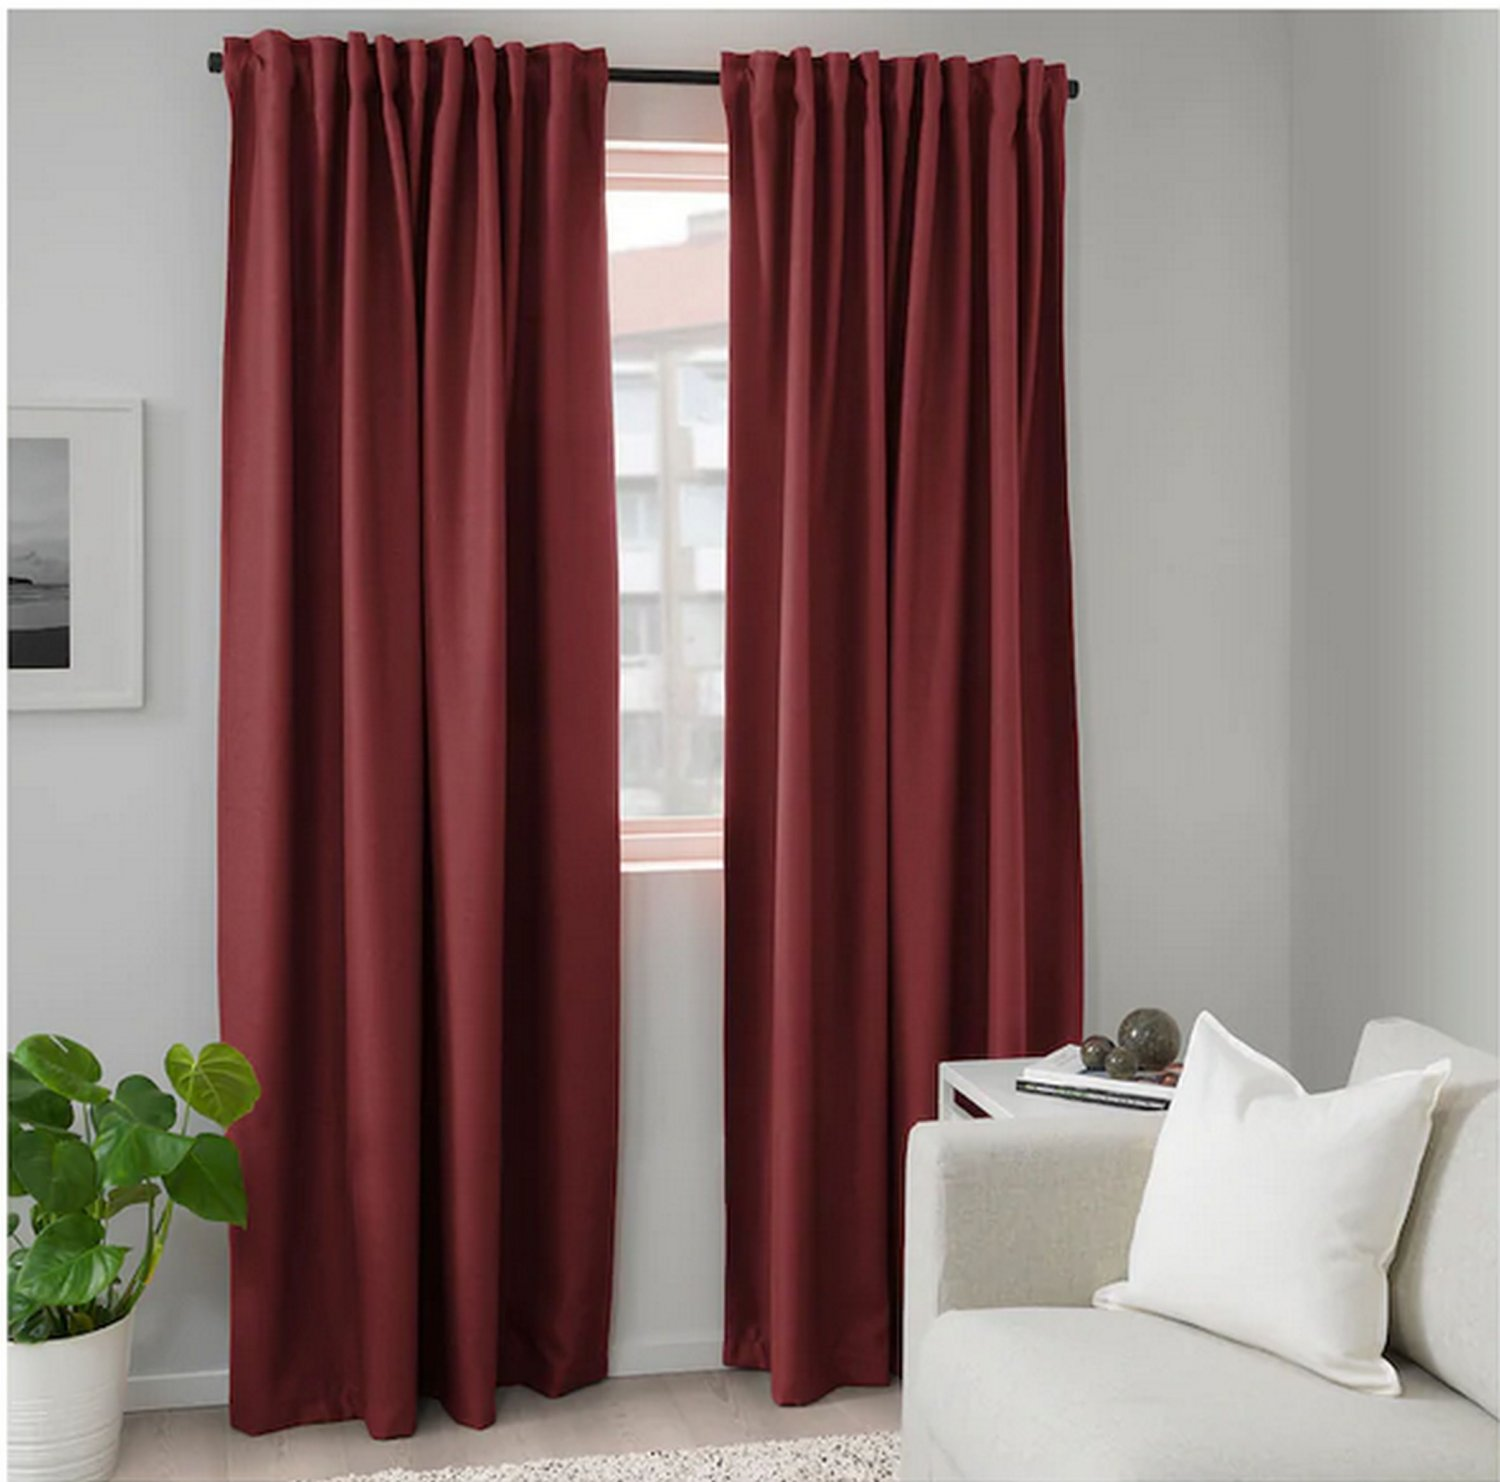 IKEA Annakajsa CURTAINS Drapes BROWN RED 2 Panels Heavy Textured Room Darkening brown-red rust